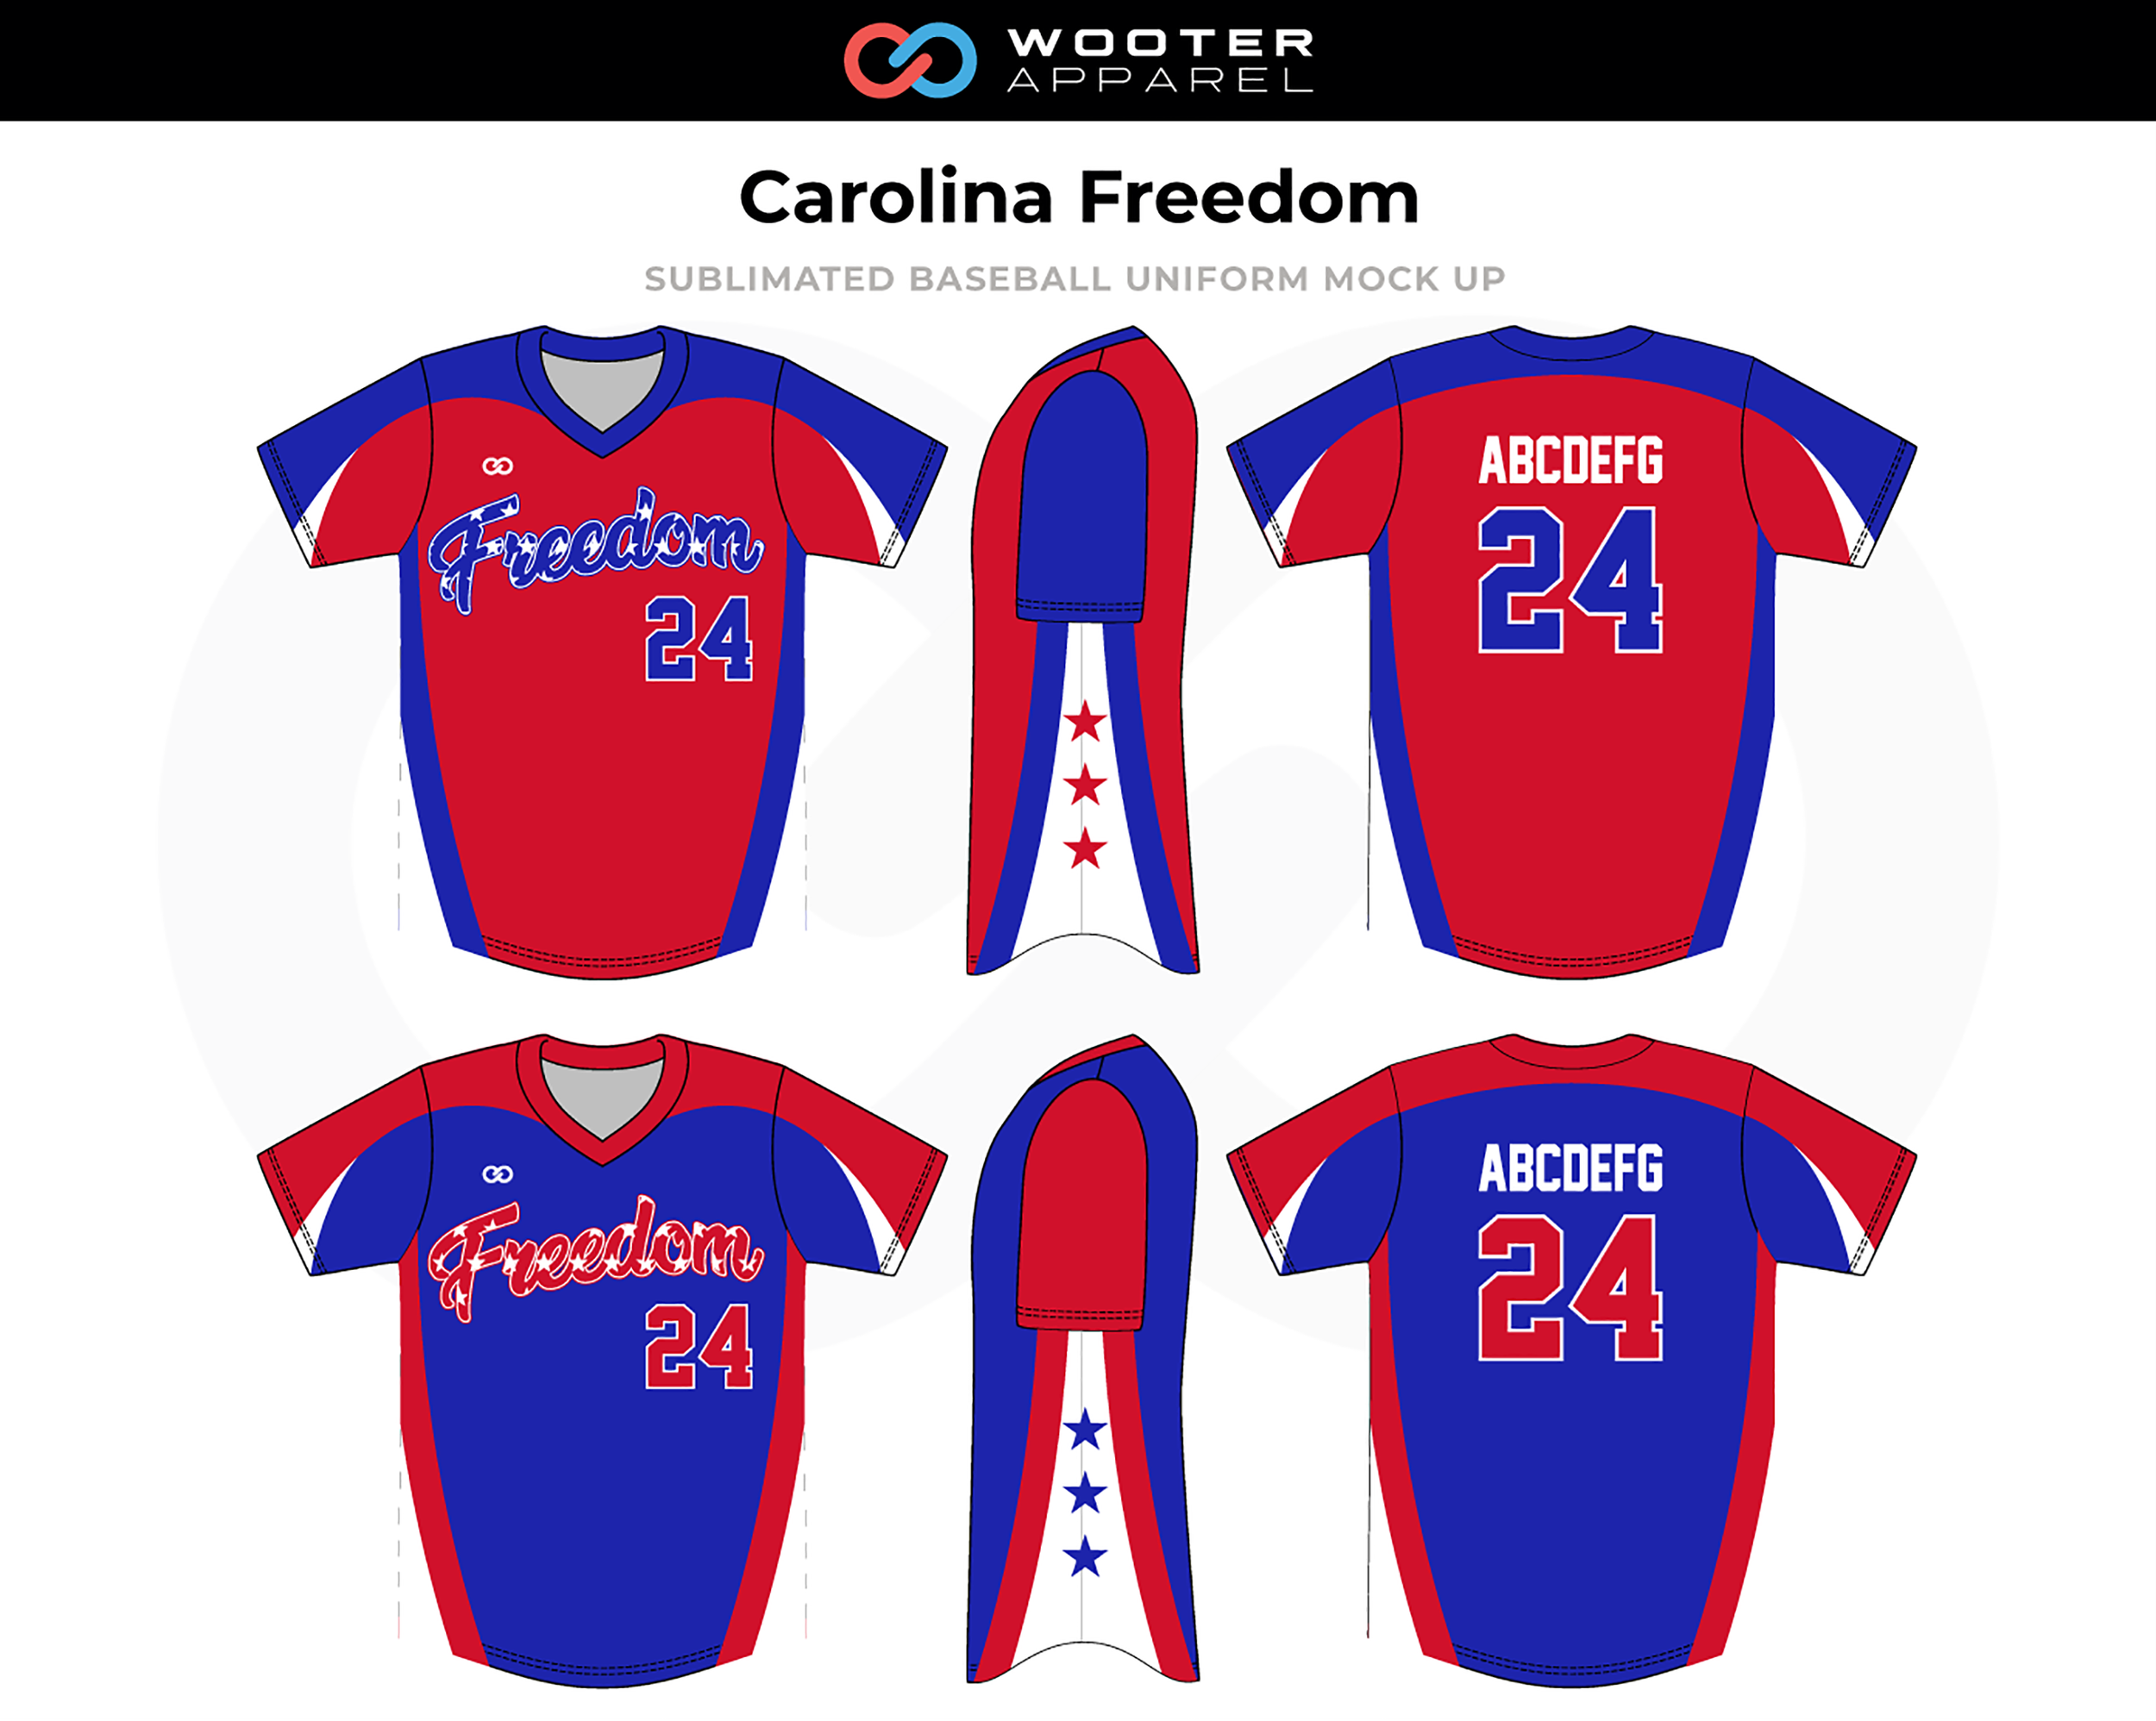 Carolina-Freedom-Sublimated-Baseball-Uniform_v1.png